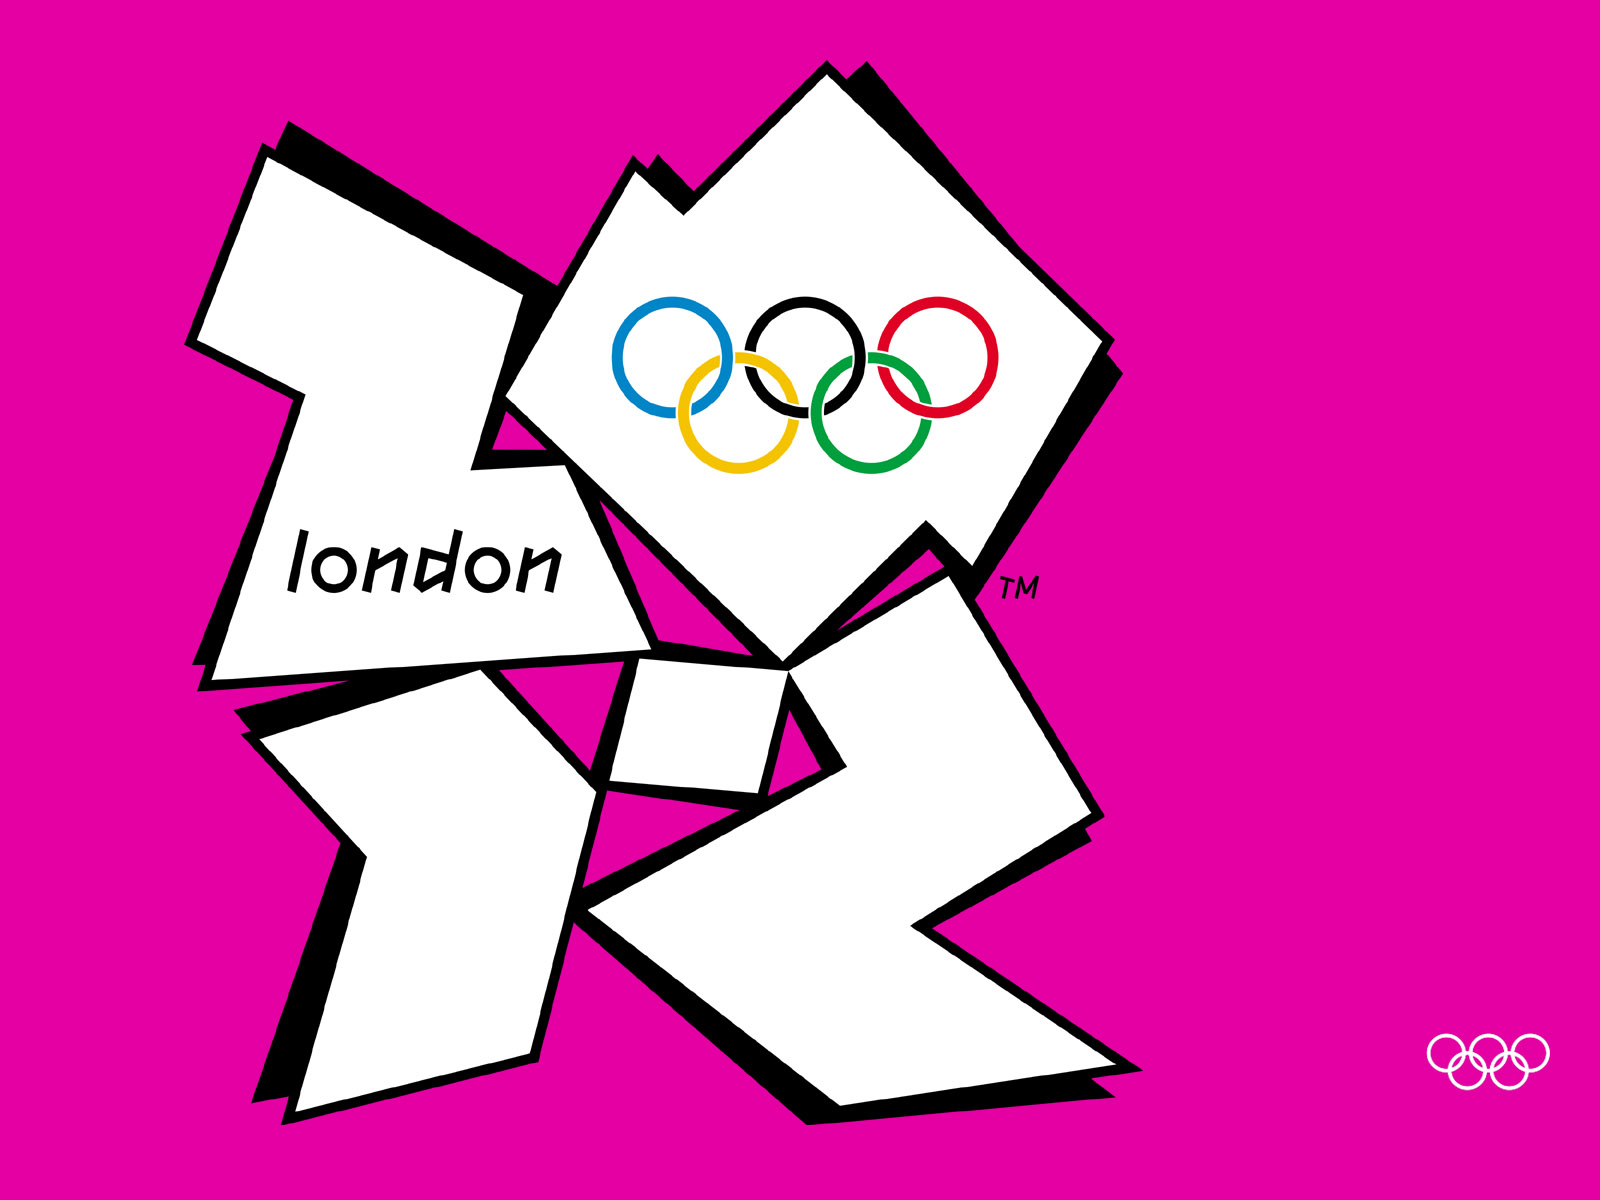 London 2012 Olympic Logo With Pink Background 1600x1200 DESKTOP London 1600x1200